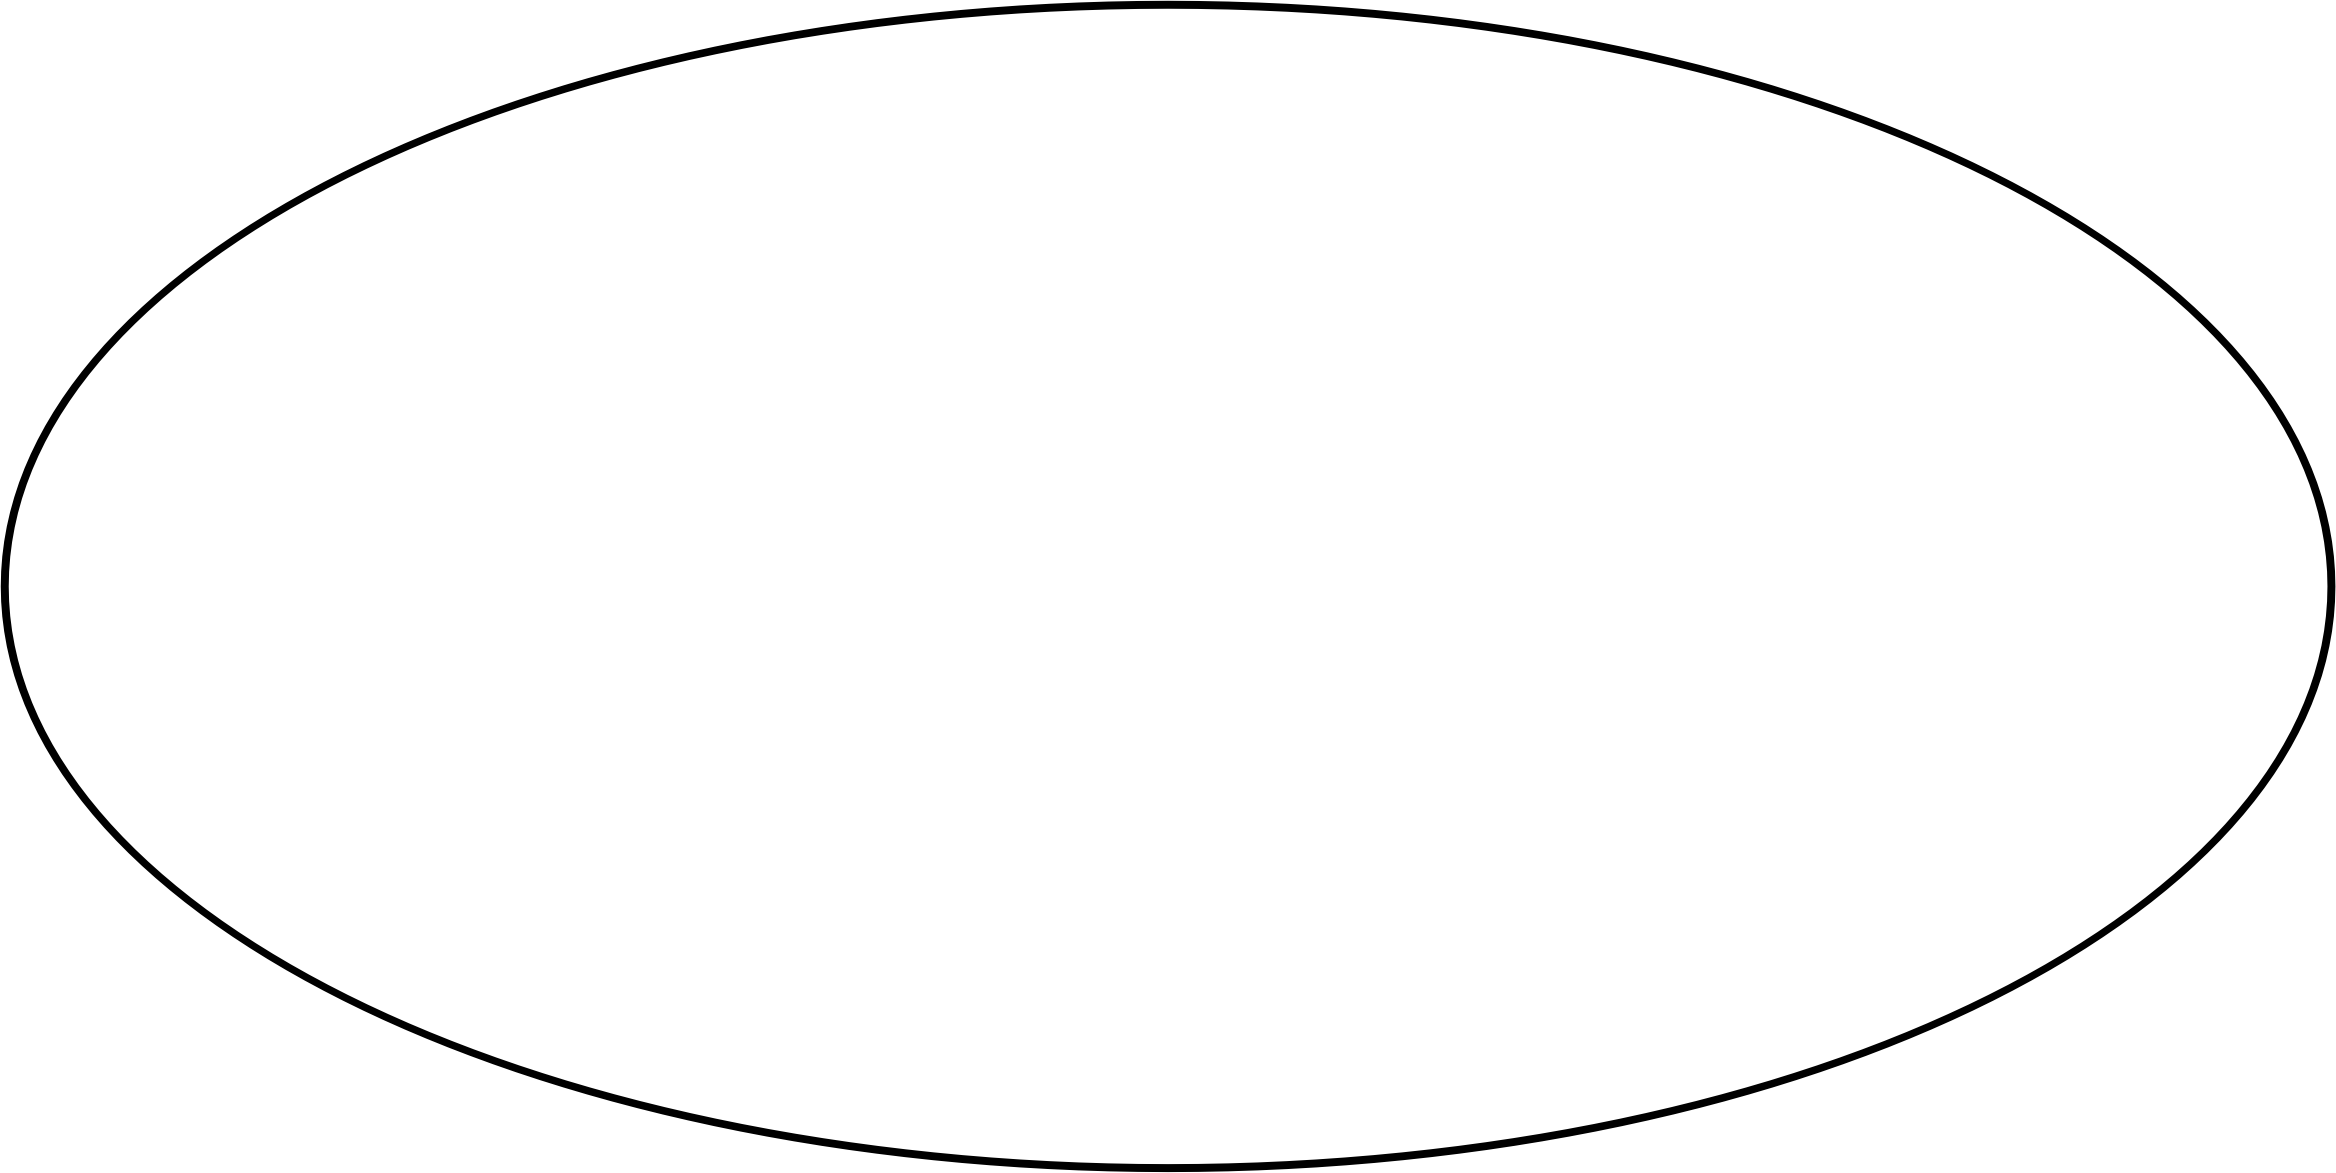 Oval Transparent PNG Image